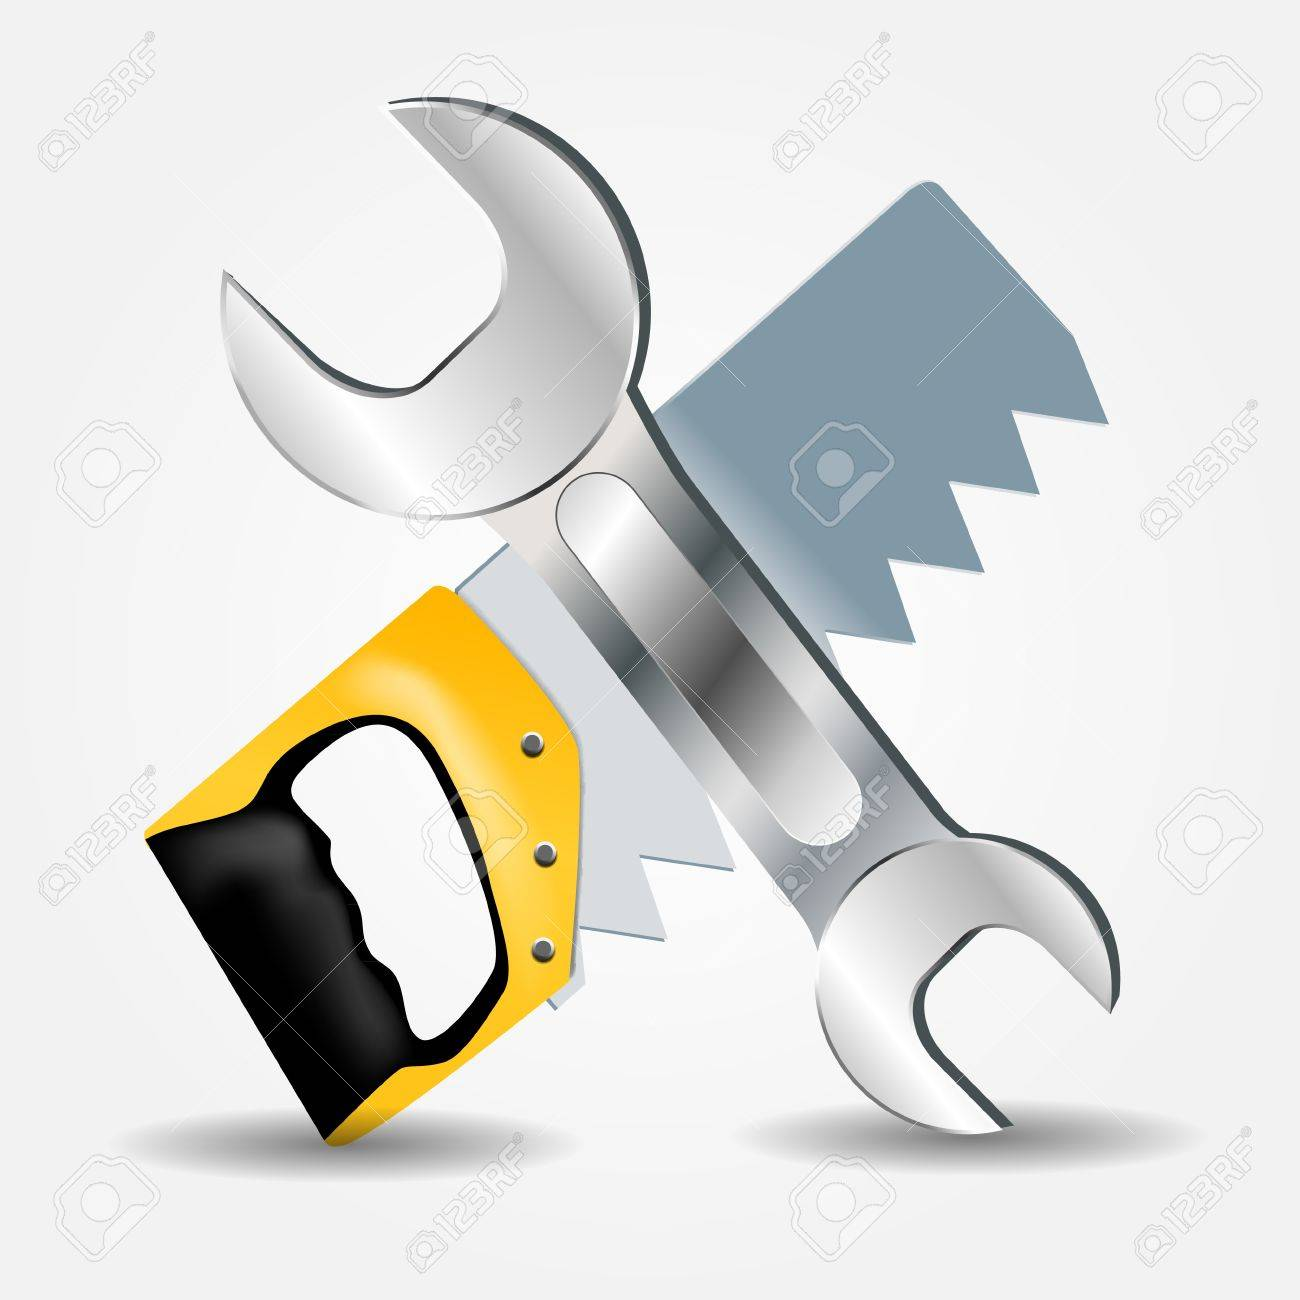 Saw and Wrench icon illustration Stock Vector - 20596445